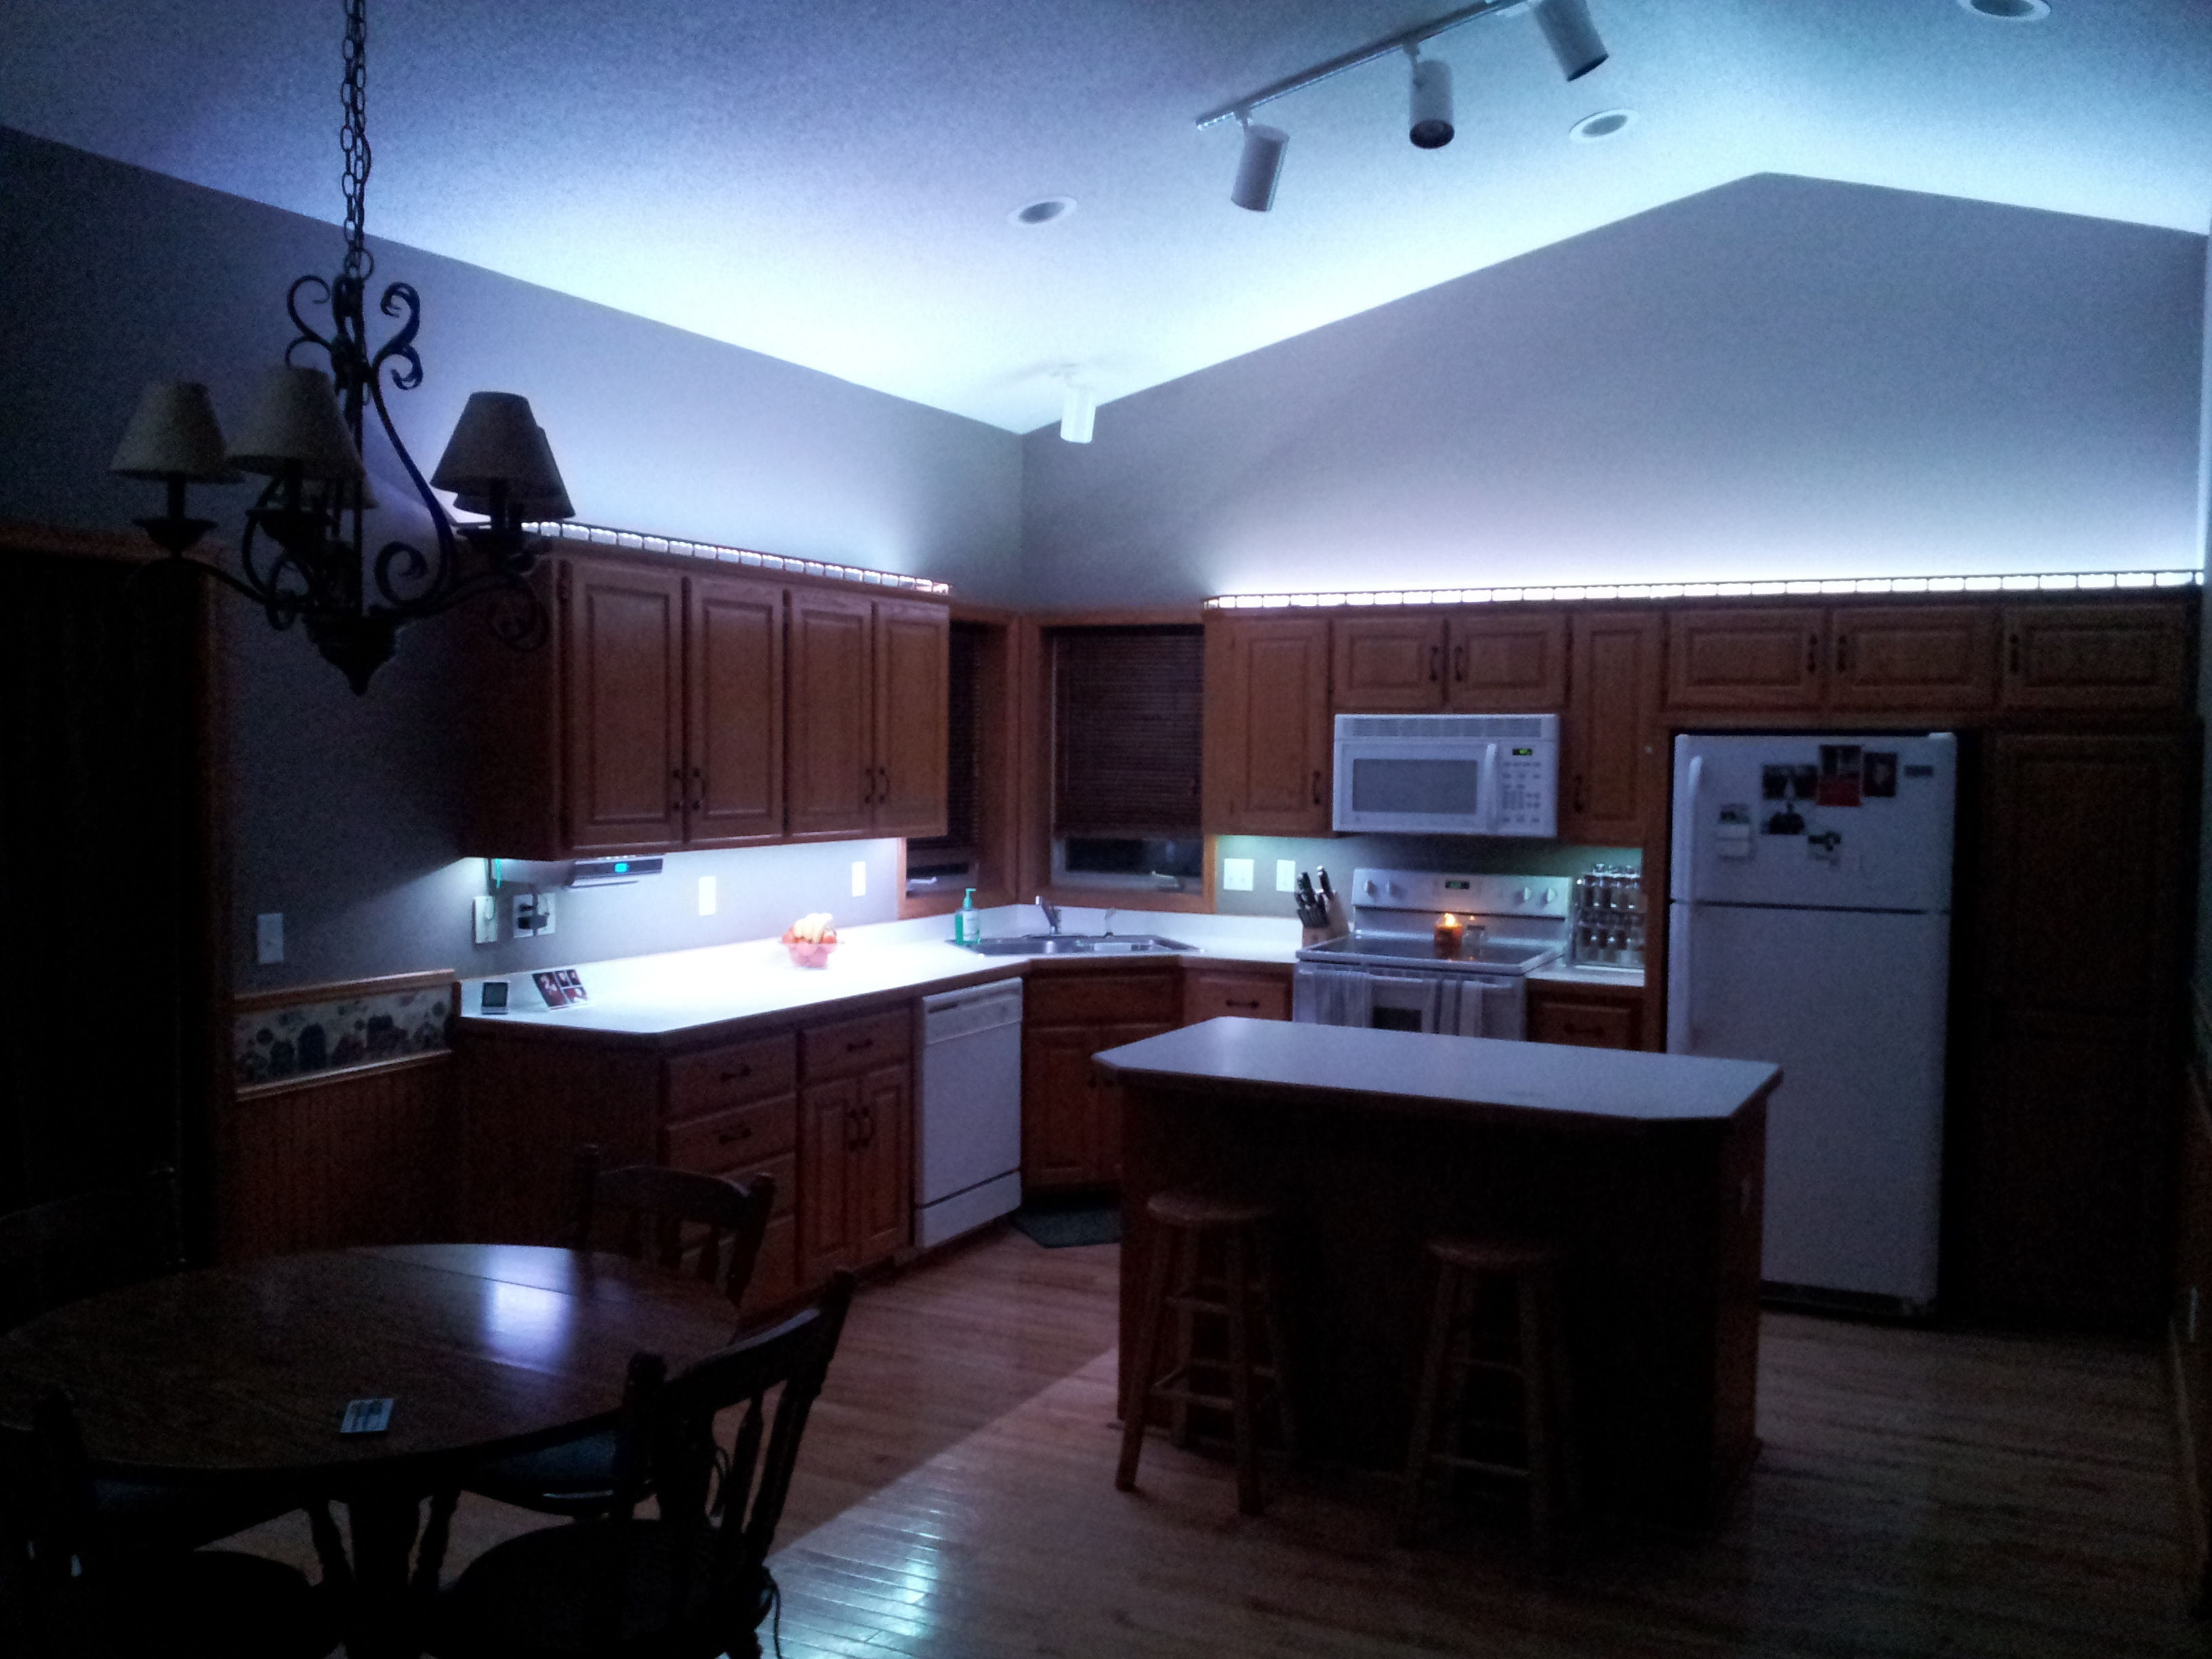 Advantages of led kitchen lighting - darbylanefurniture.com